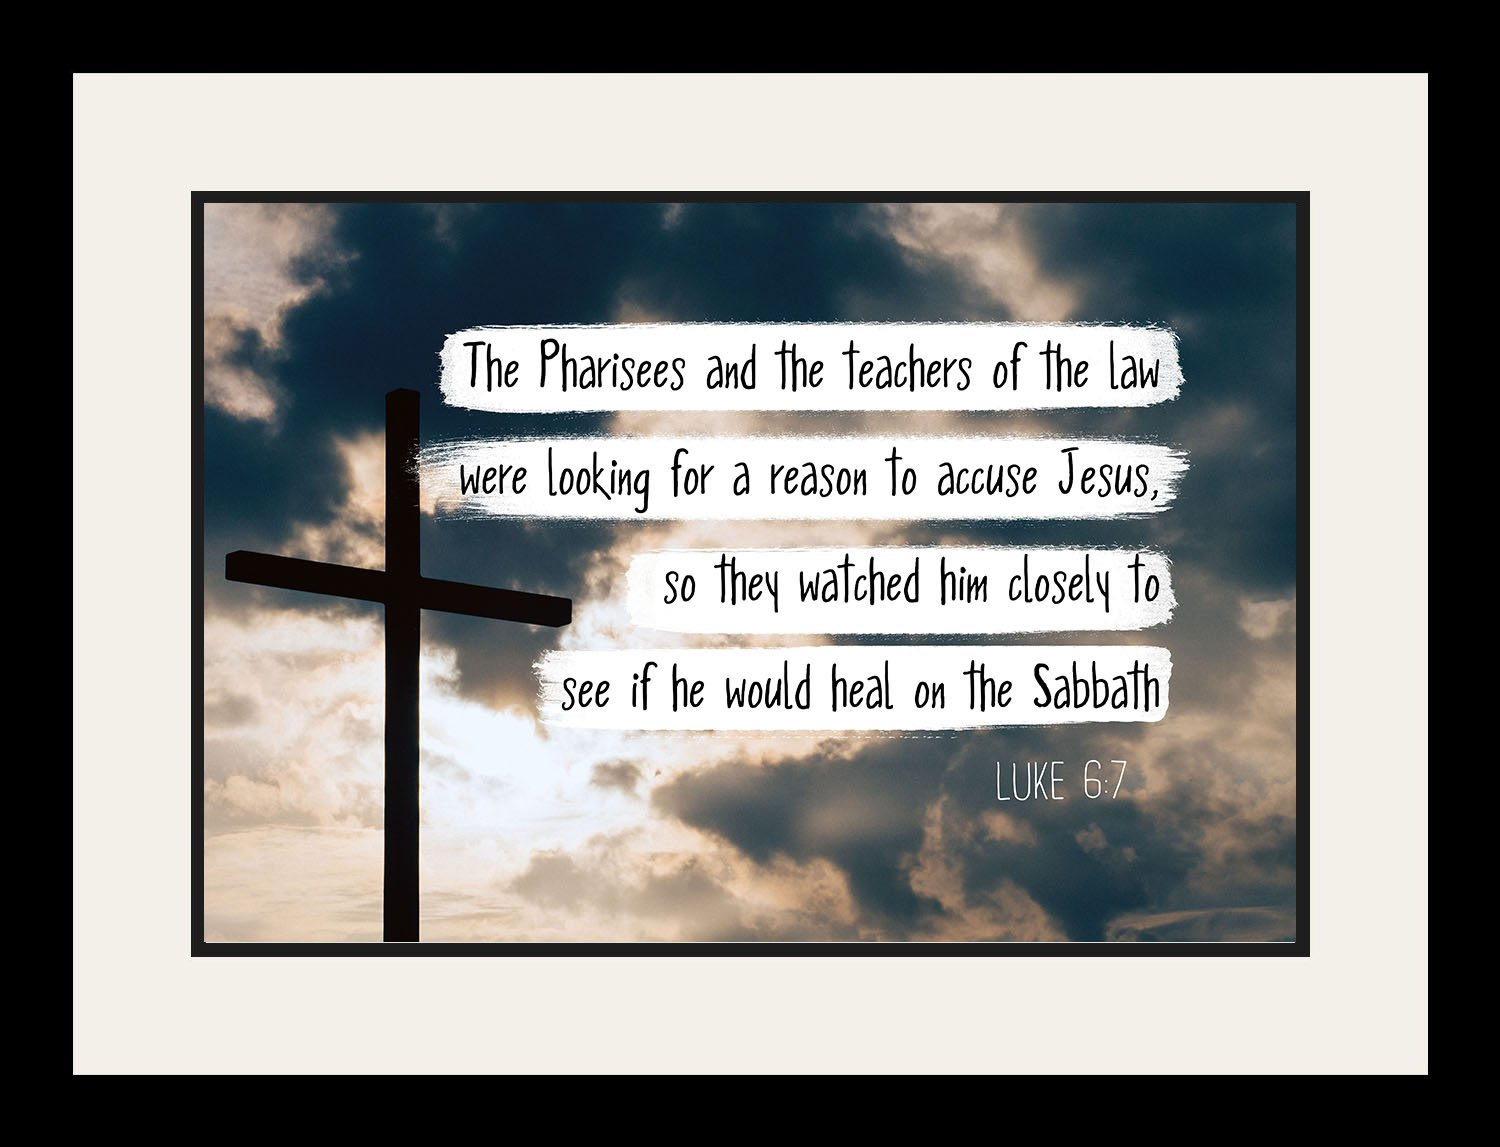 Luke 6:7 The Pharisees and the teachers - Christian Poster, Print, Picture or Framed Wall Art Decor - Bible Verse Collection - Religious Gift for Holidays Christmas Baptism (19x25 Framed)